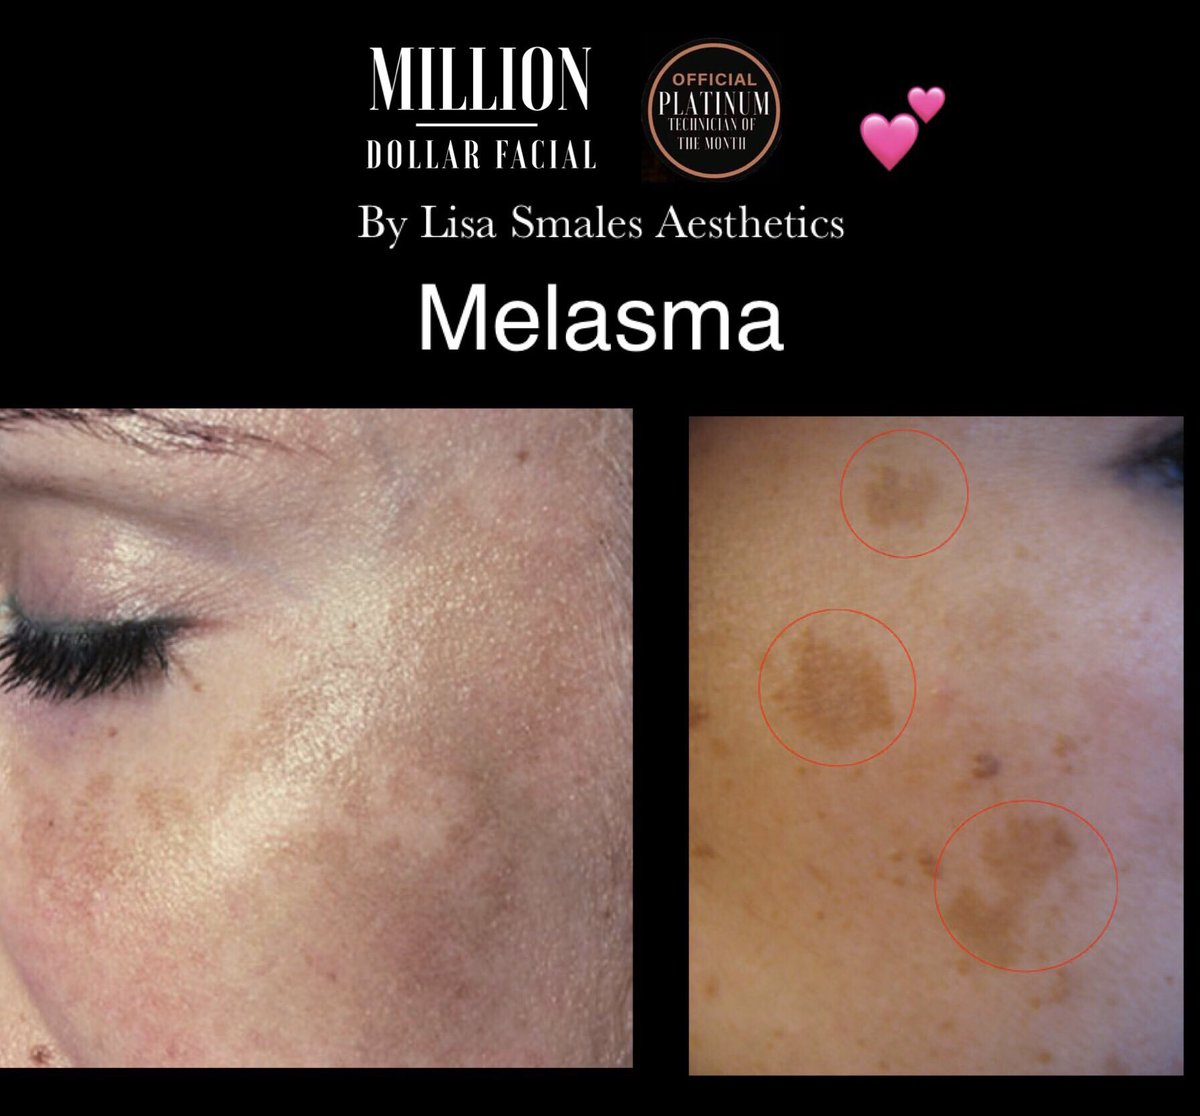 Do you suffer with this skin condition???  Melasma (muh-LAZ-muh) is a common skin problem.   Contact me for help @lisasmalesaesthetics  #SPF #MEDICALGRADE #VITAMINC #SKINNEEDLING #MEDIPLUS #MILLIONDOLLARFACIAL pic.twitter.com/dWkHJXXUgN